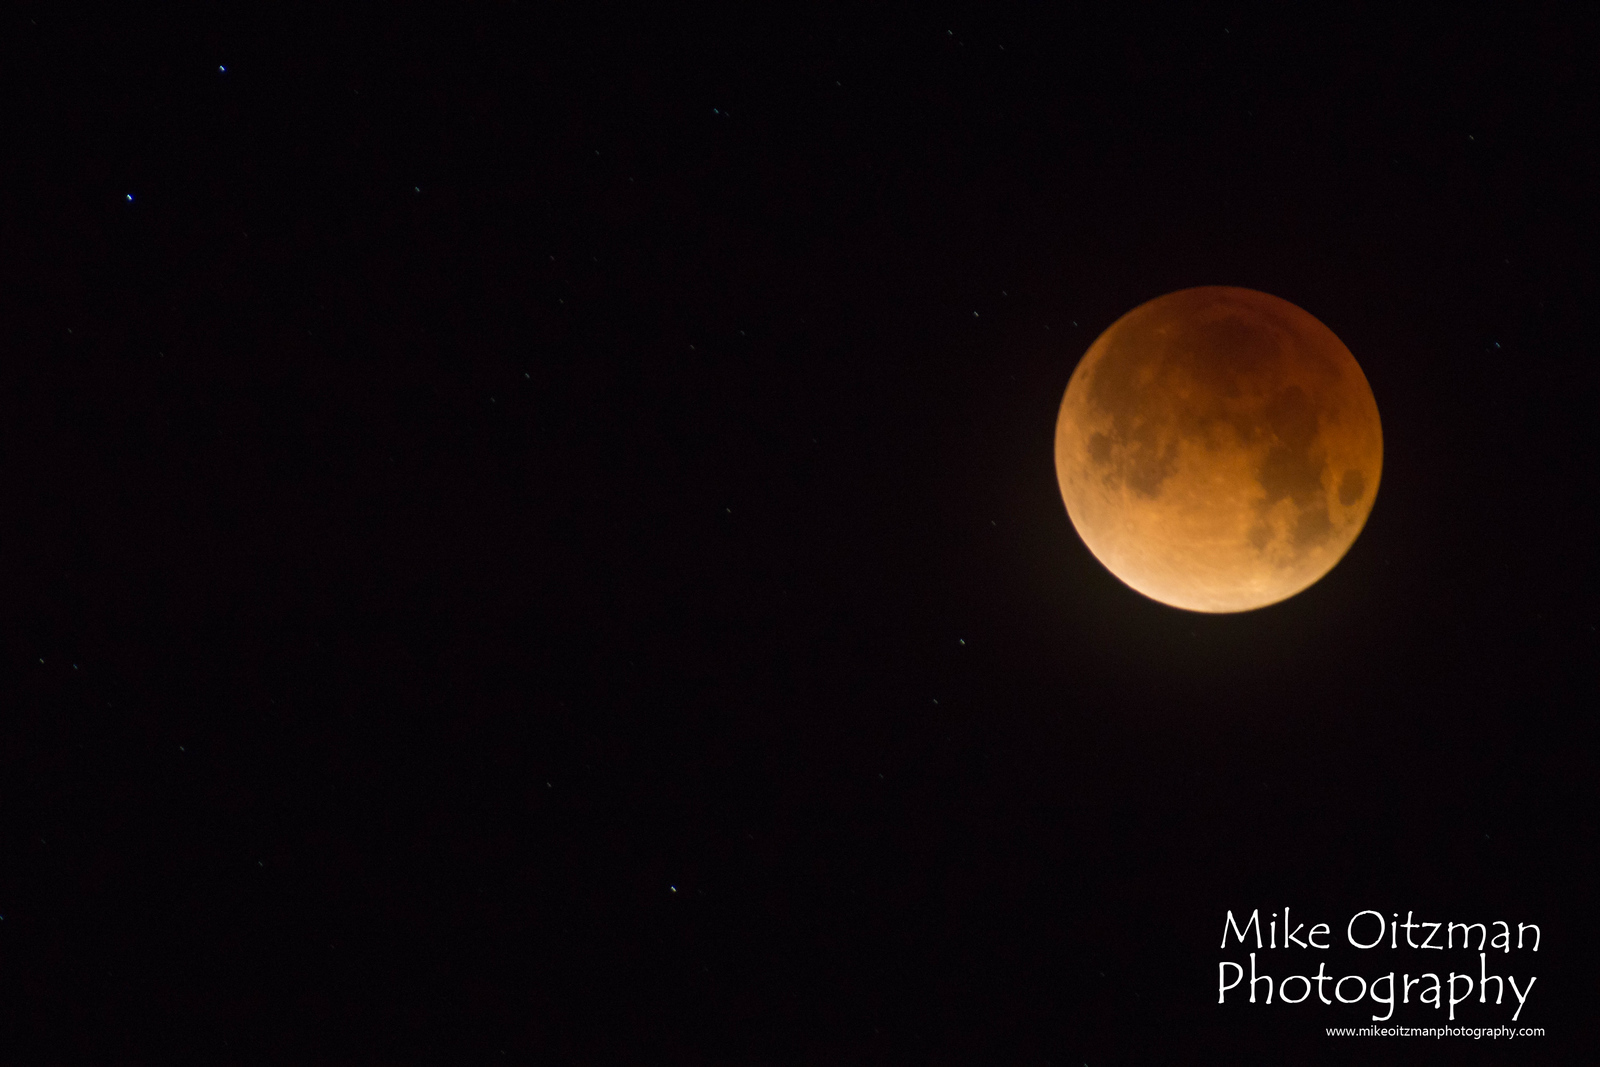 Image of the super, blue, blood moon on 1/31/18. This is at the totality for the eclipse.